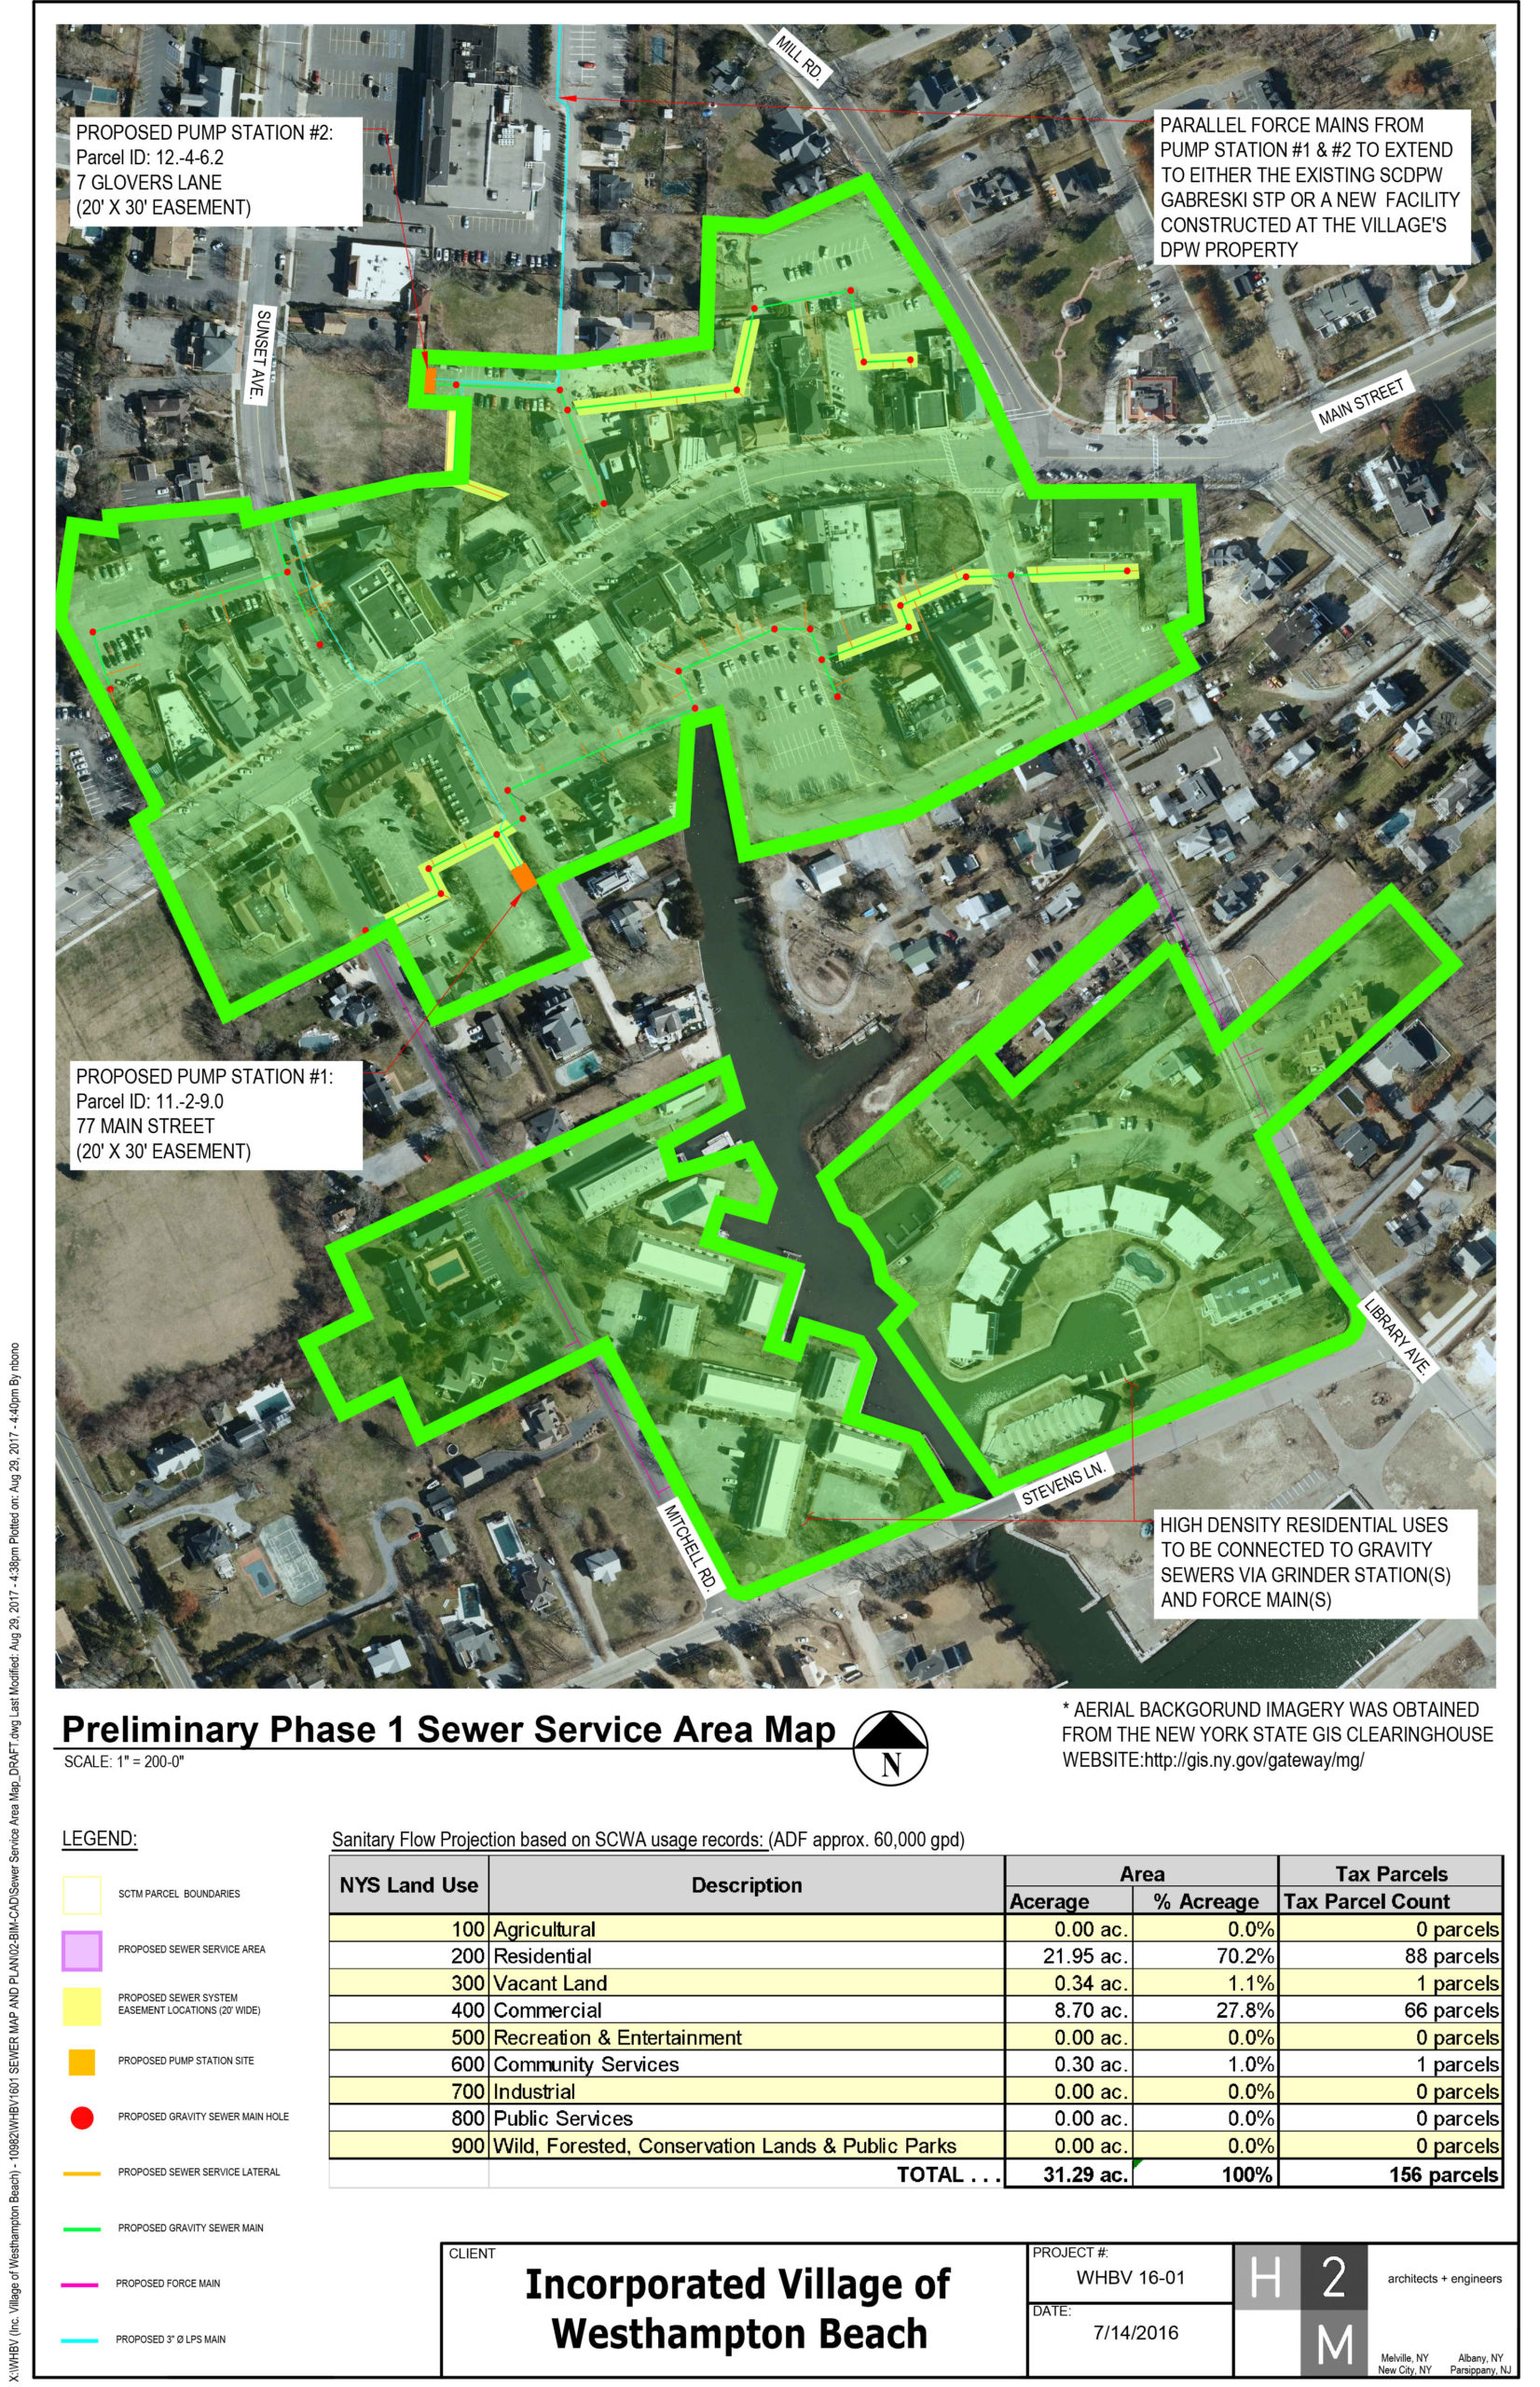 Phase 1 of the sewer service area.